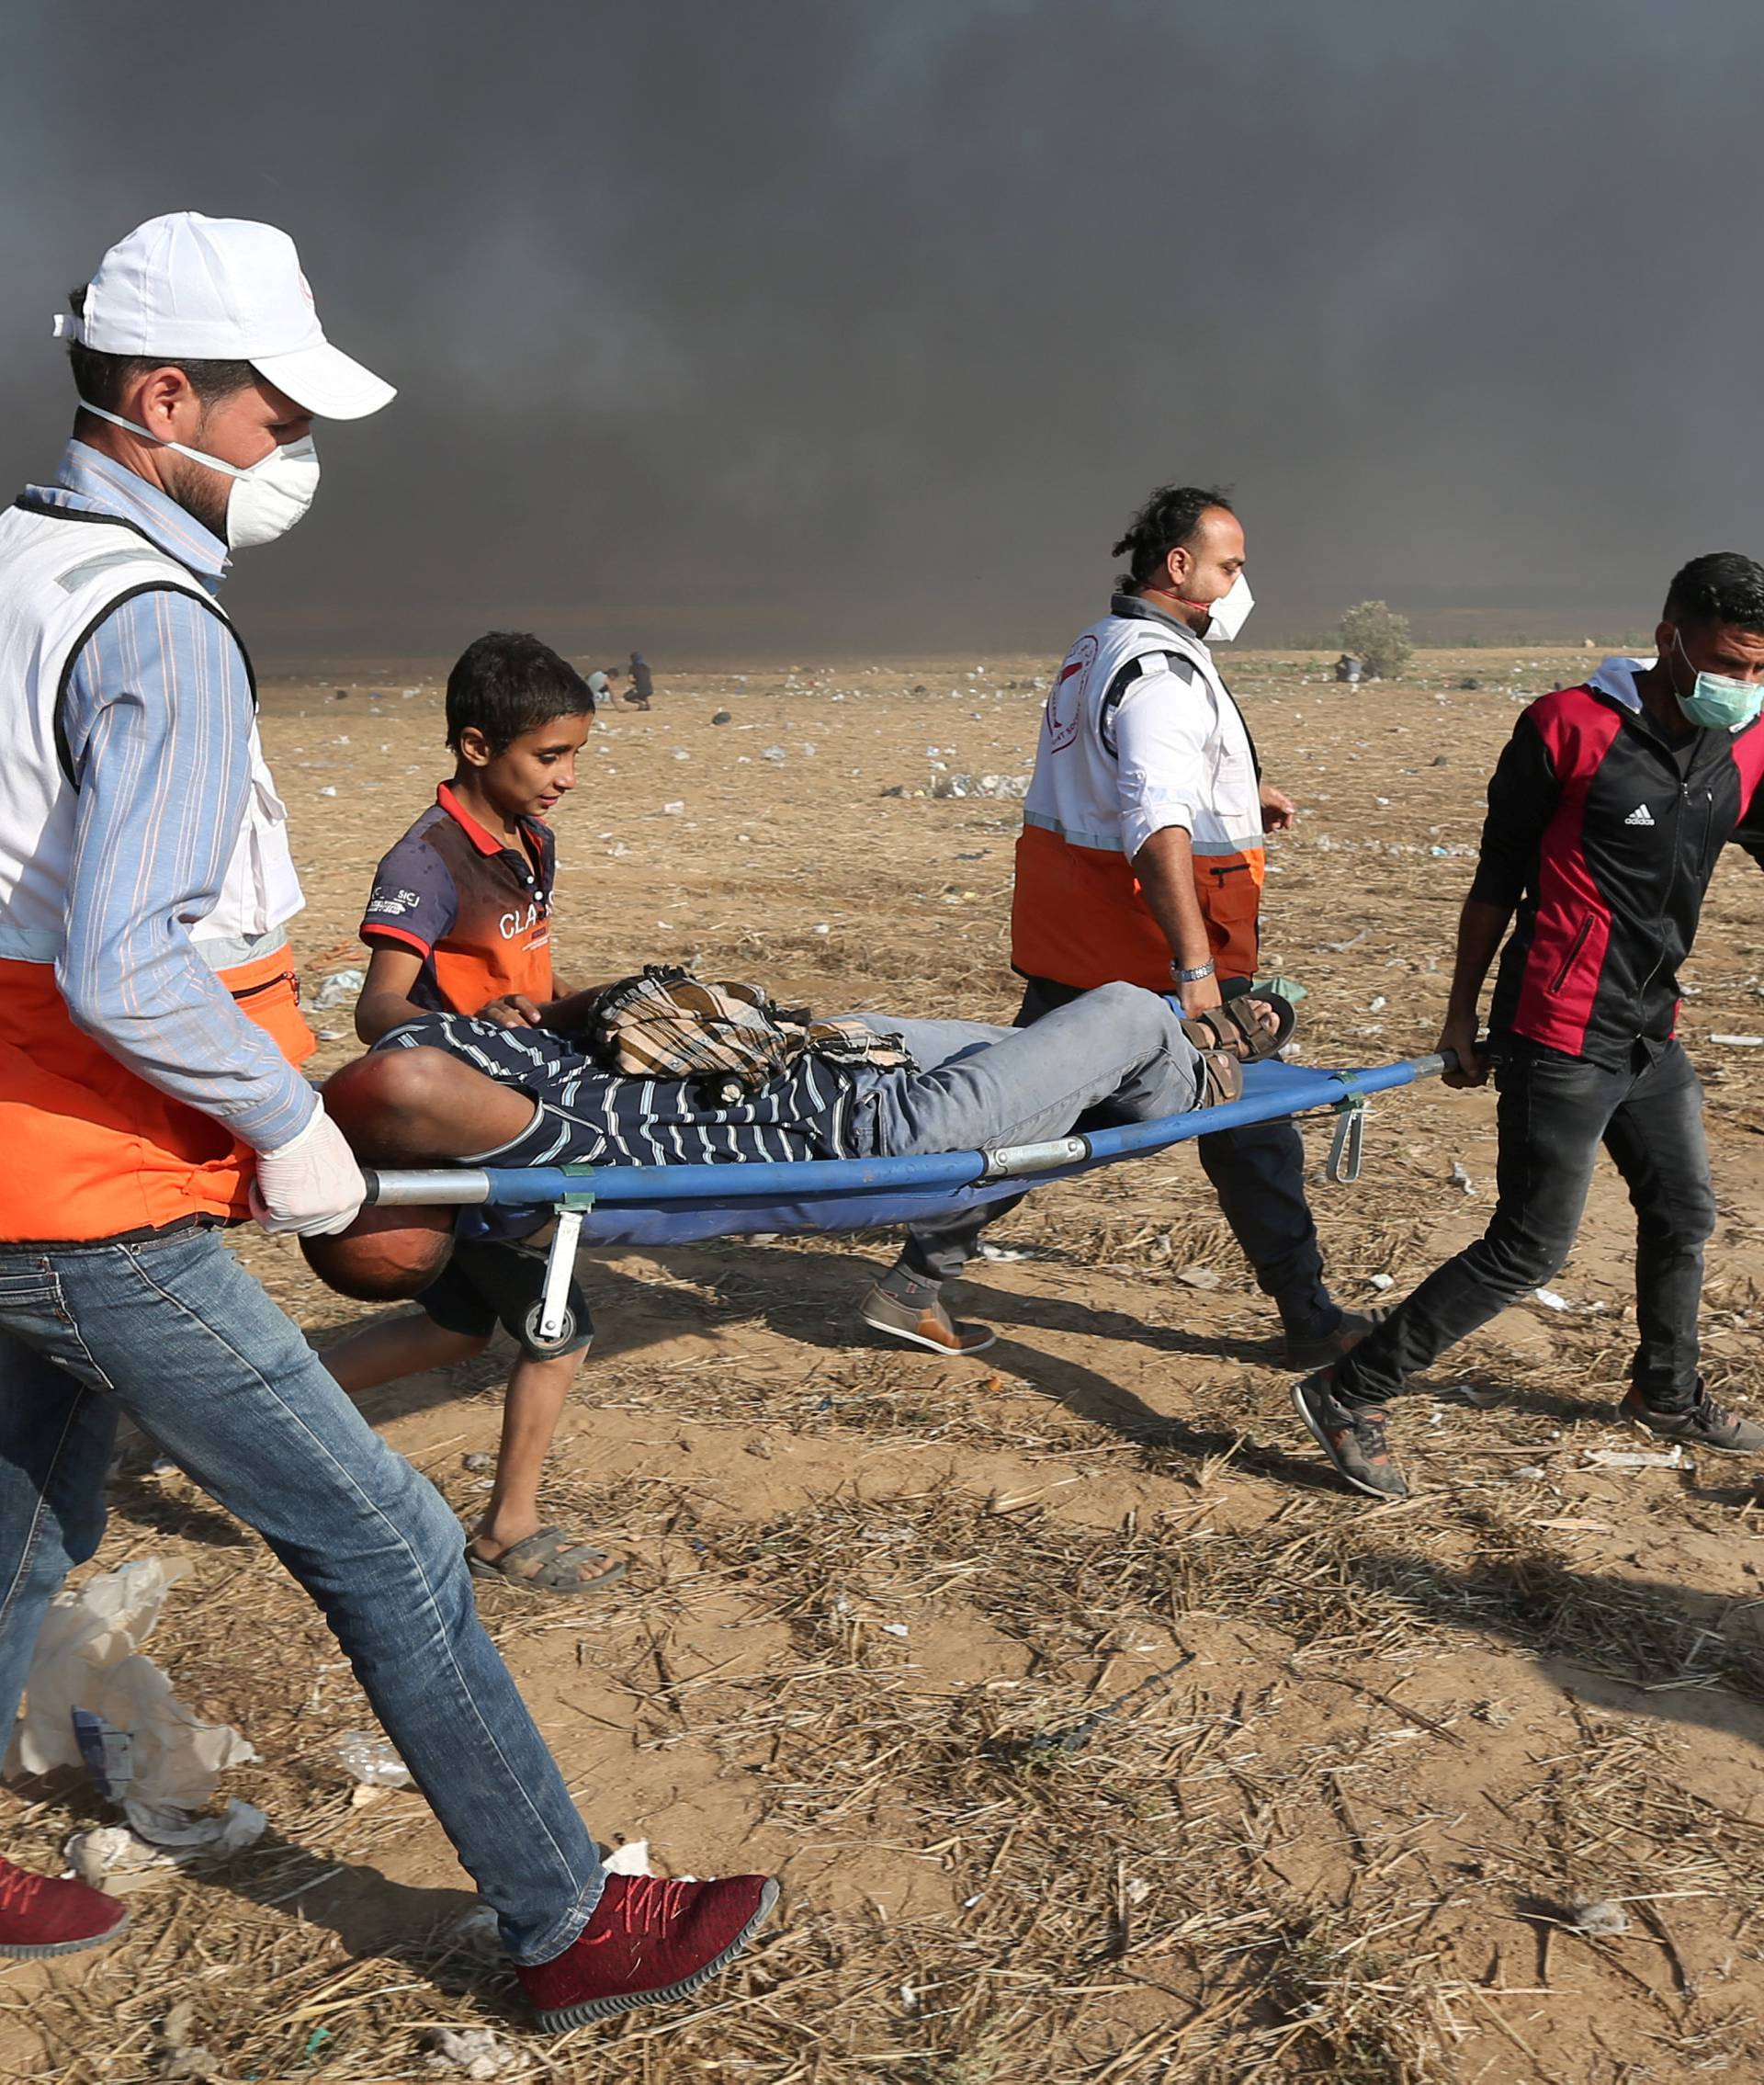 Wounded Palestinian demonstrator is evacuated after inhaling tear gas fired by Israeli troops during a protest marking the 70th anniversary of Nakba, at the Israel-Gaza border in the southern Gaza Strip